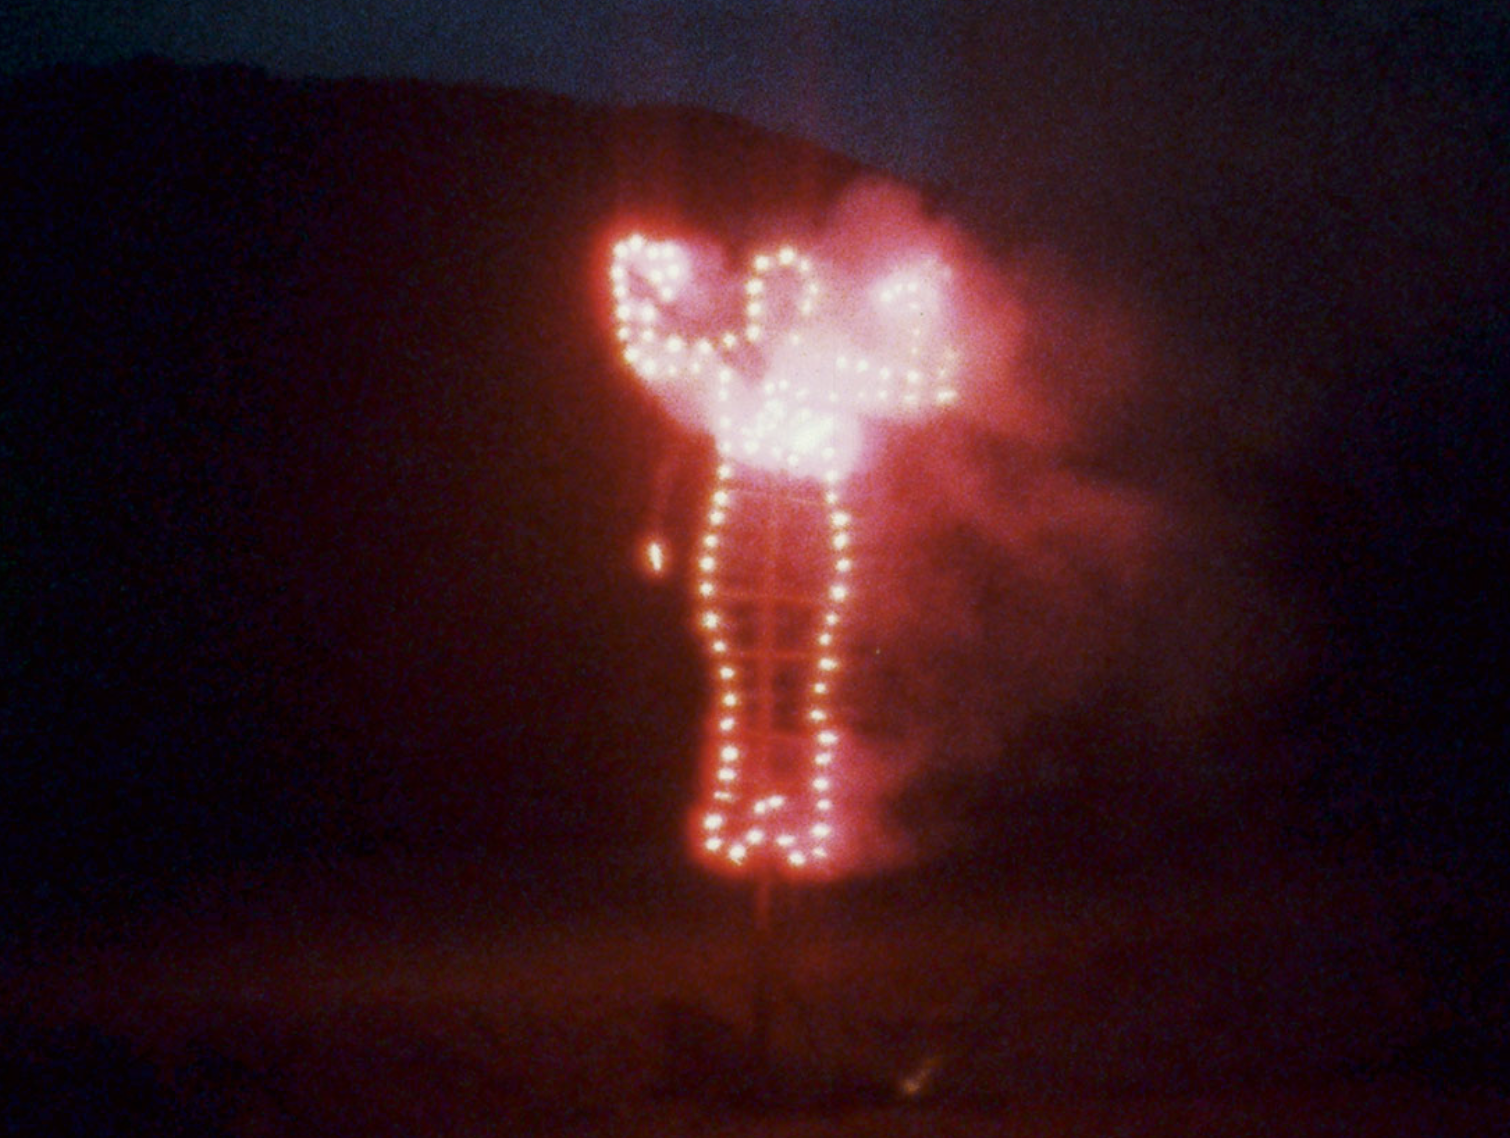 Anima, Silueta de Cohetes (Firework Piece) 1976 Ana Mendieta Film Super-8. © The Estate of Ana Mendieta Collection, LLC. Courtesy Galerie Lelong, New York